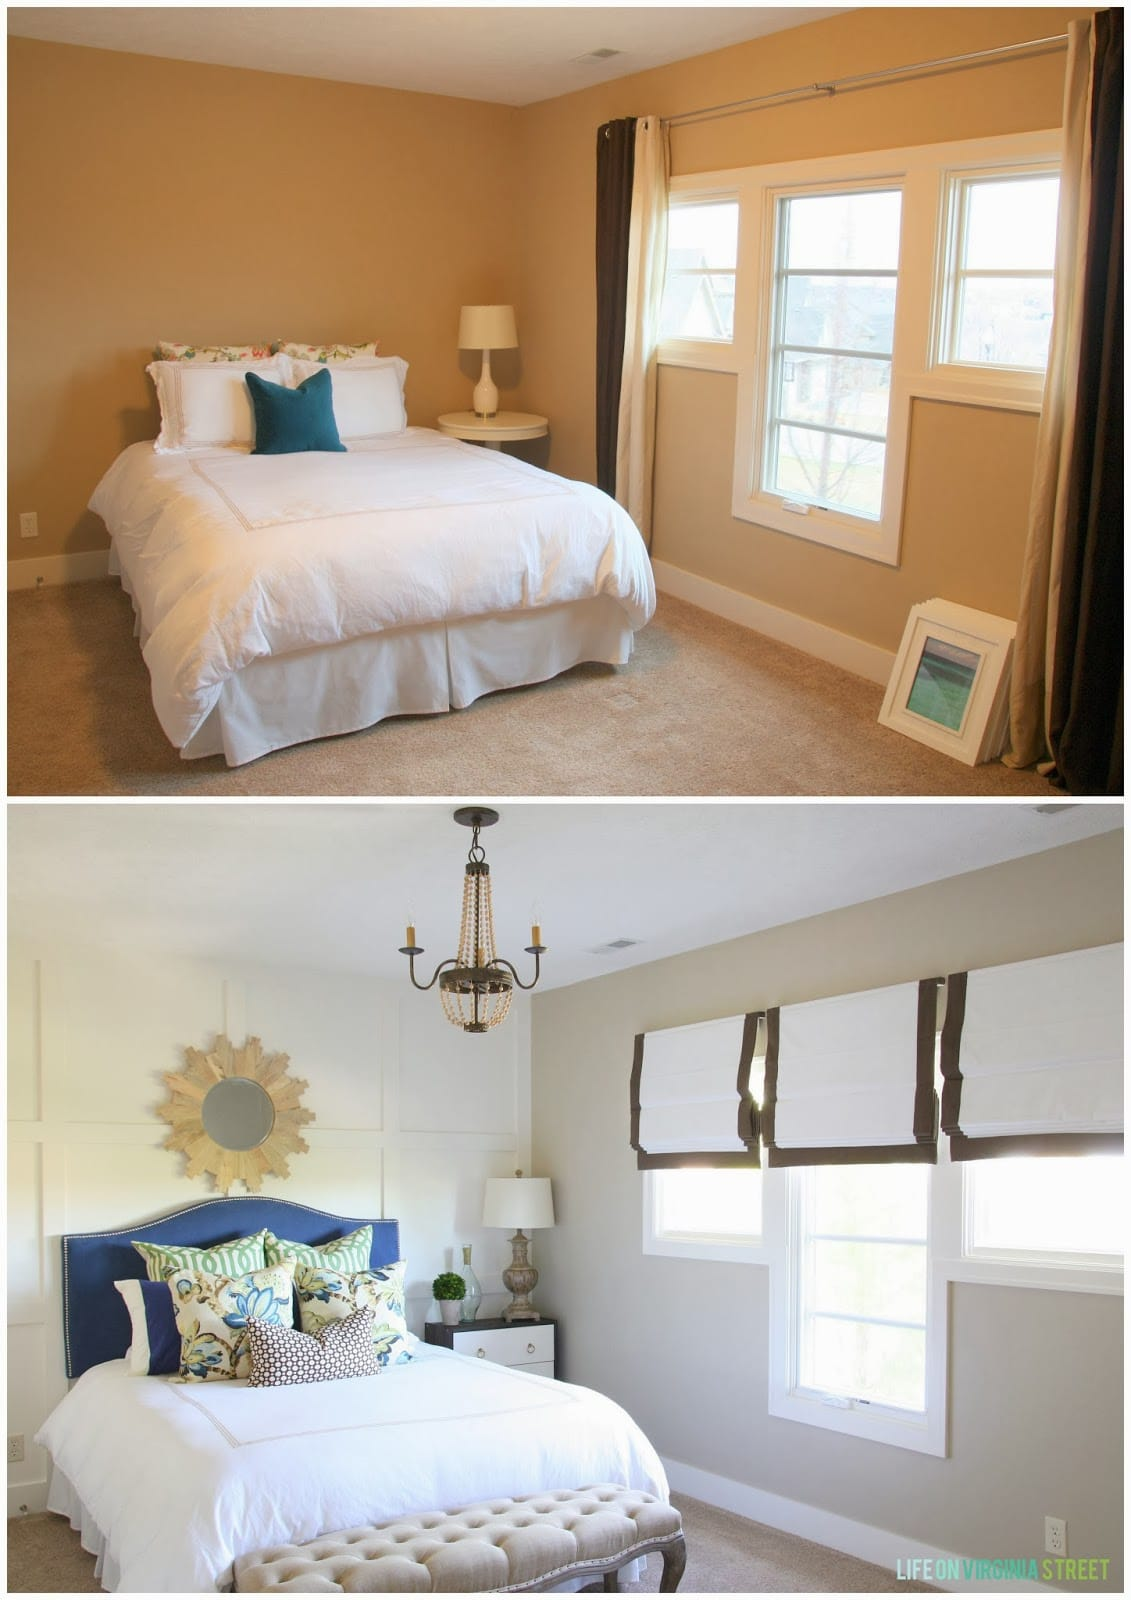 Bedroom Makeover Before And After Guest Bedroom Refresh  Life On Virginia Street